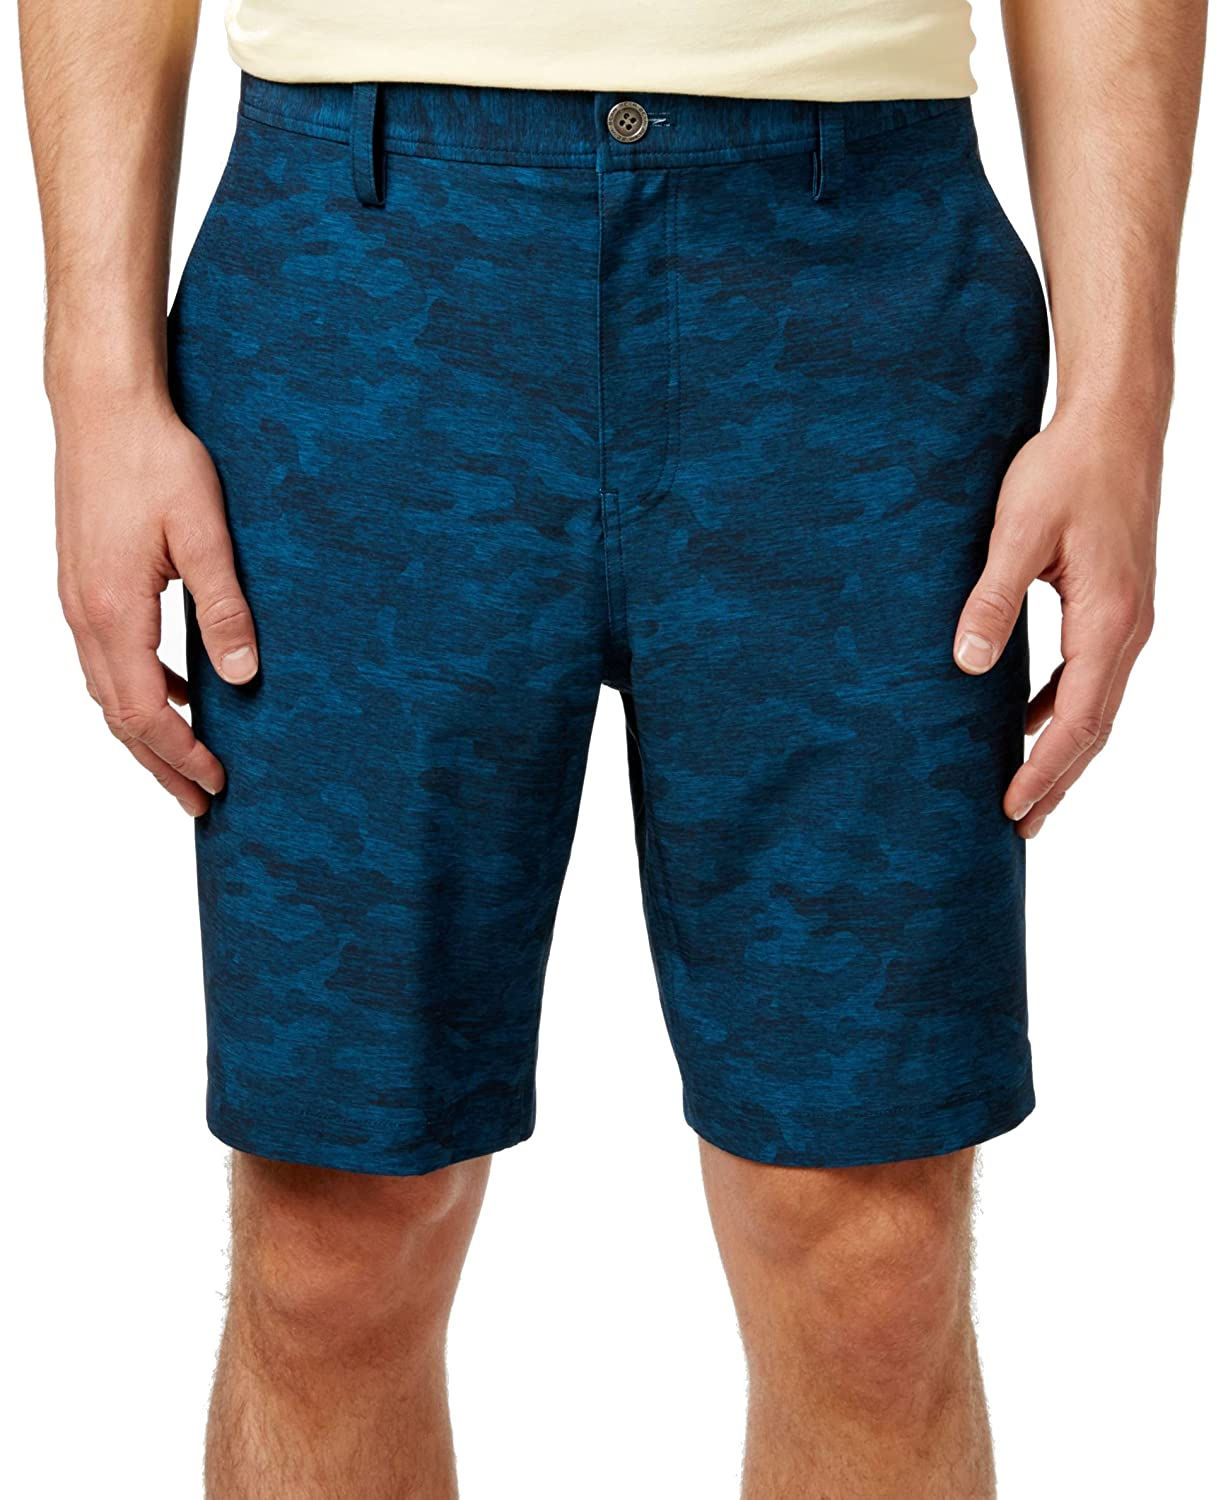 32 Degree Cool Men's Performance Stretch 9 inch Printed Shorts, Teal Camo